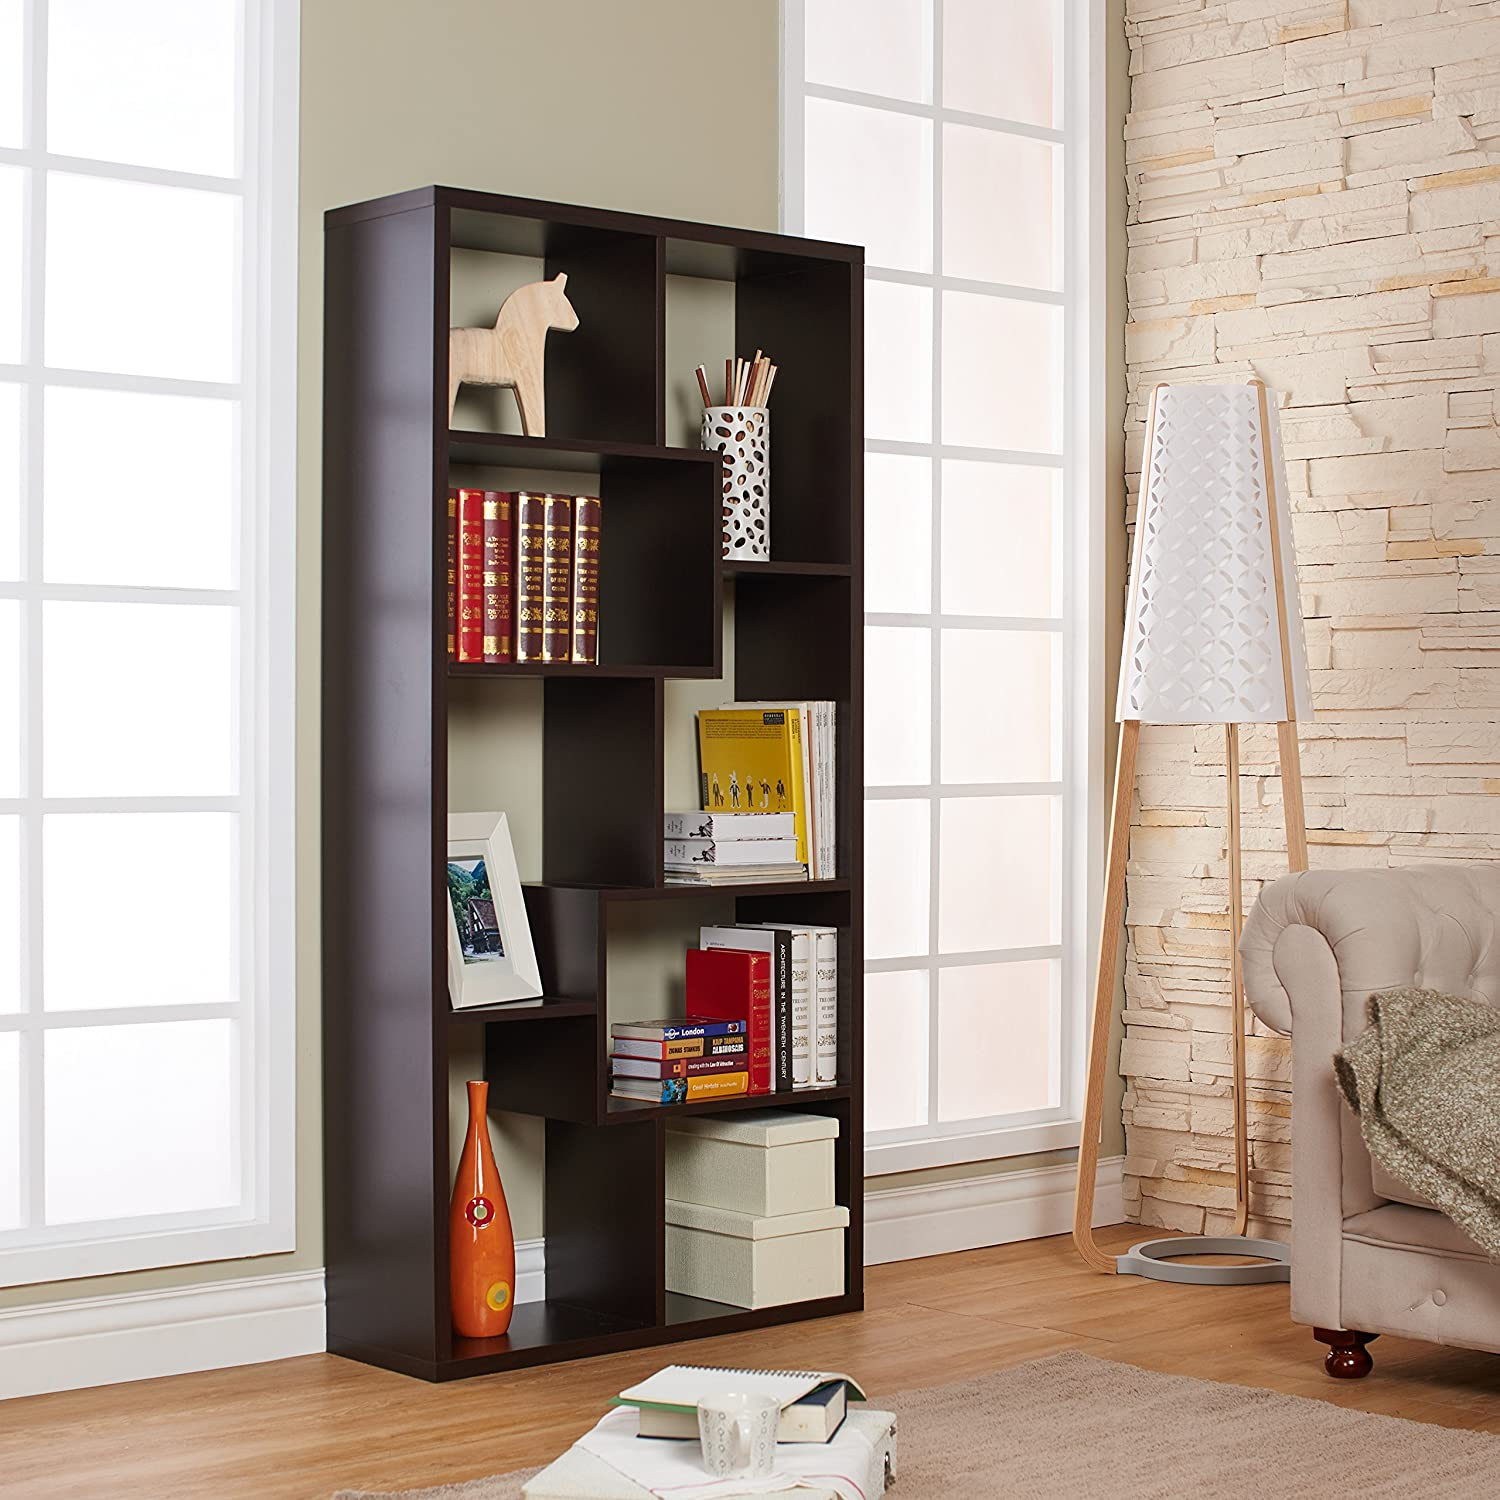 lovely unit small shelves tower skinny bookshelf bookcase white corner shelf alcove carolanderson wooden box backless furniture